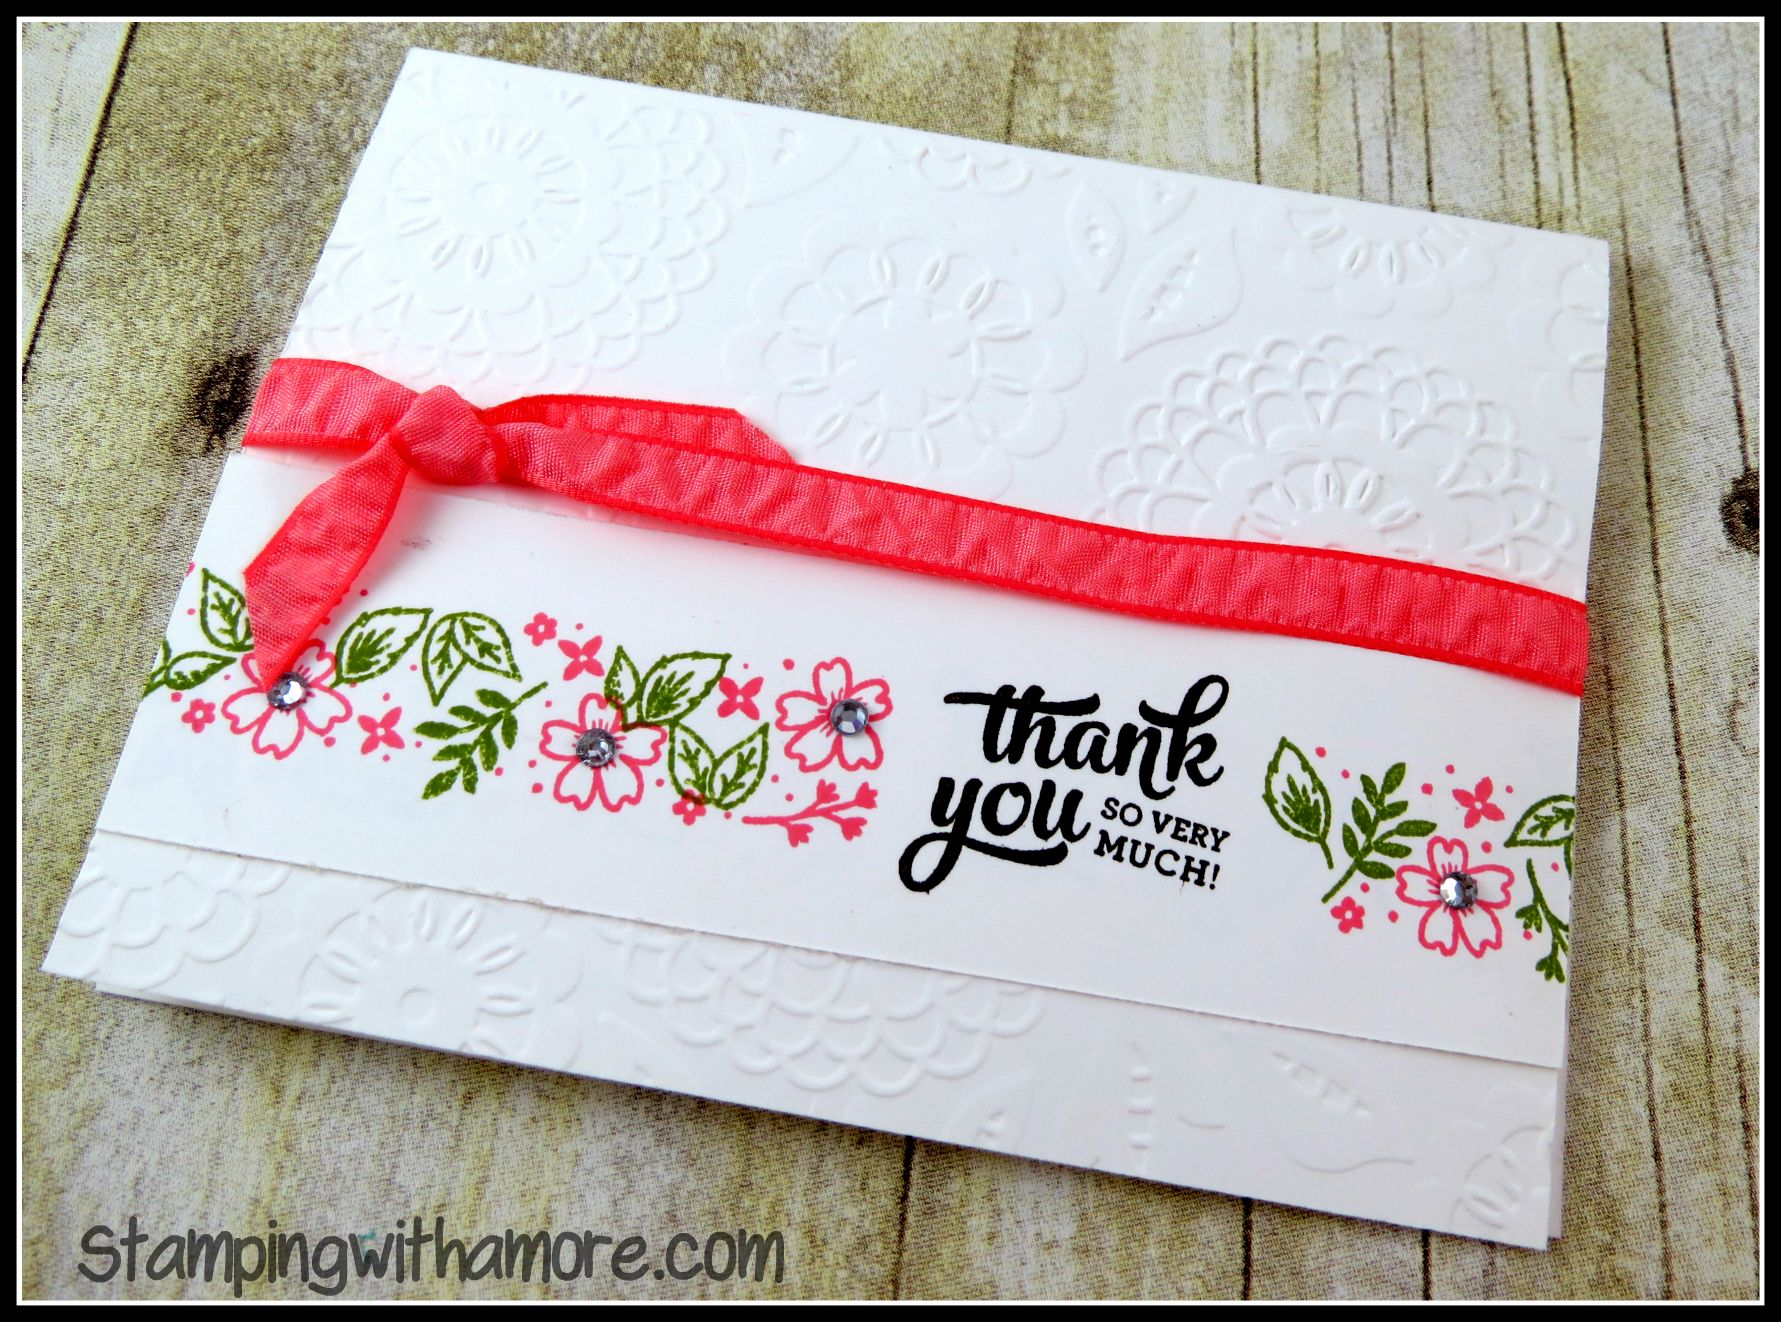 Pin by Stamping With Amore on Cards Pinterest